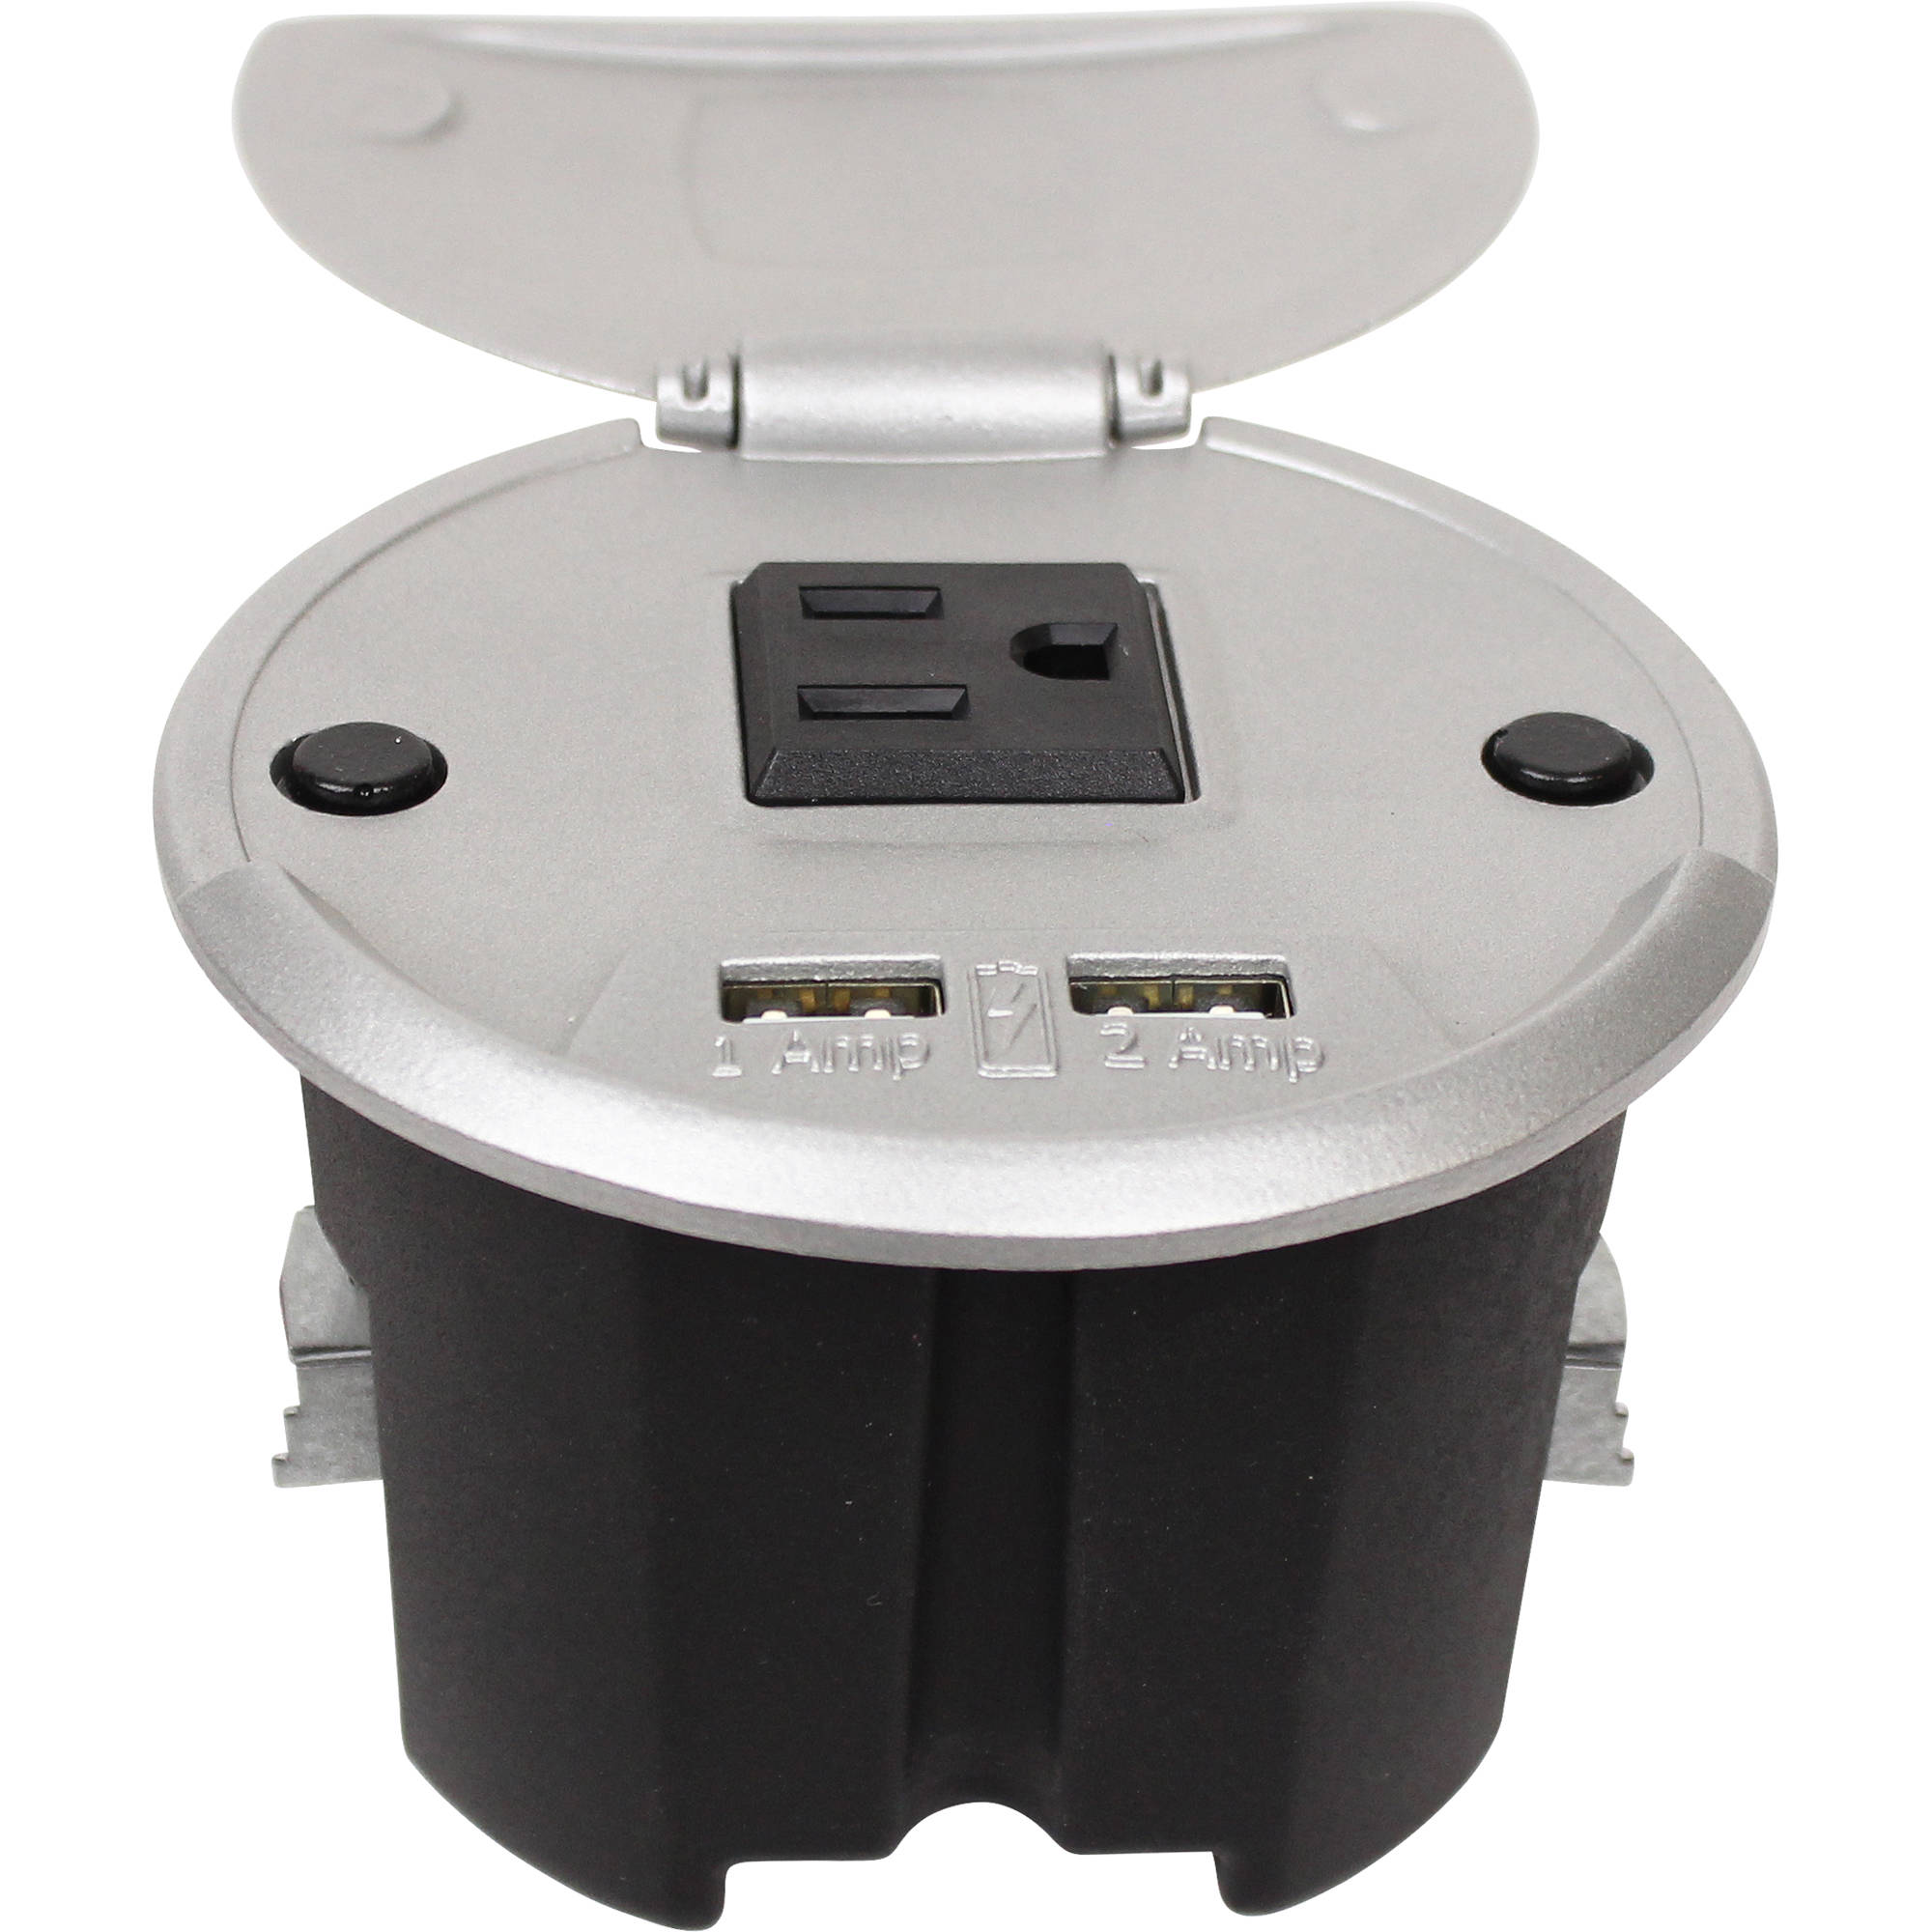 Fsr Charging Table Box With Ac Outlet Two Tc Chrg Alm 6 Wiring An 2 Black White Usb Ports Aluminum